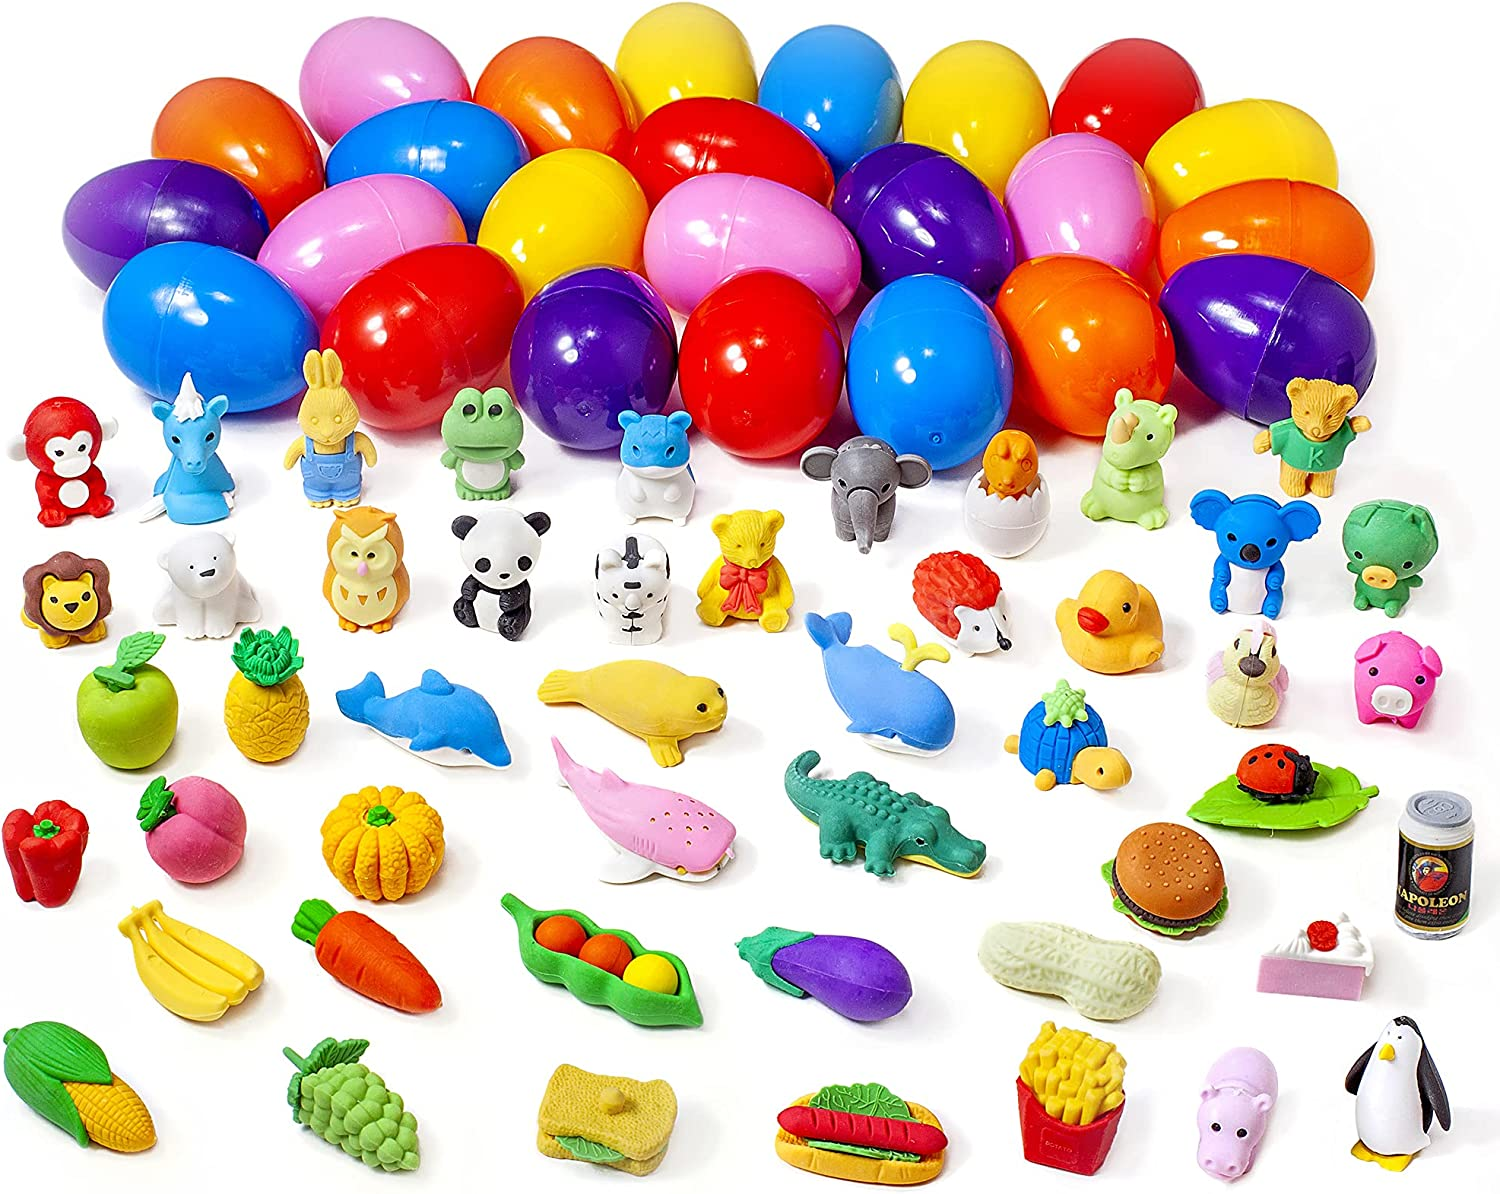 AMOFACIO 24 Pack Prefilled Easter Eggs Fillers with 48PCS Food Animal Erasers Toys for Kids, Halloween Mini Cute Pencil 3D Erasers Bulk Puzzles Toys School Supplies Prizes Gifts for Students